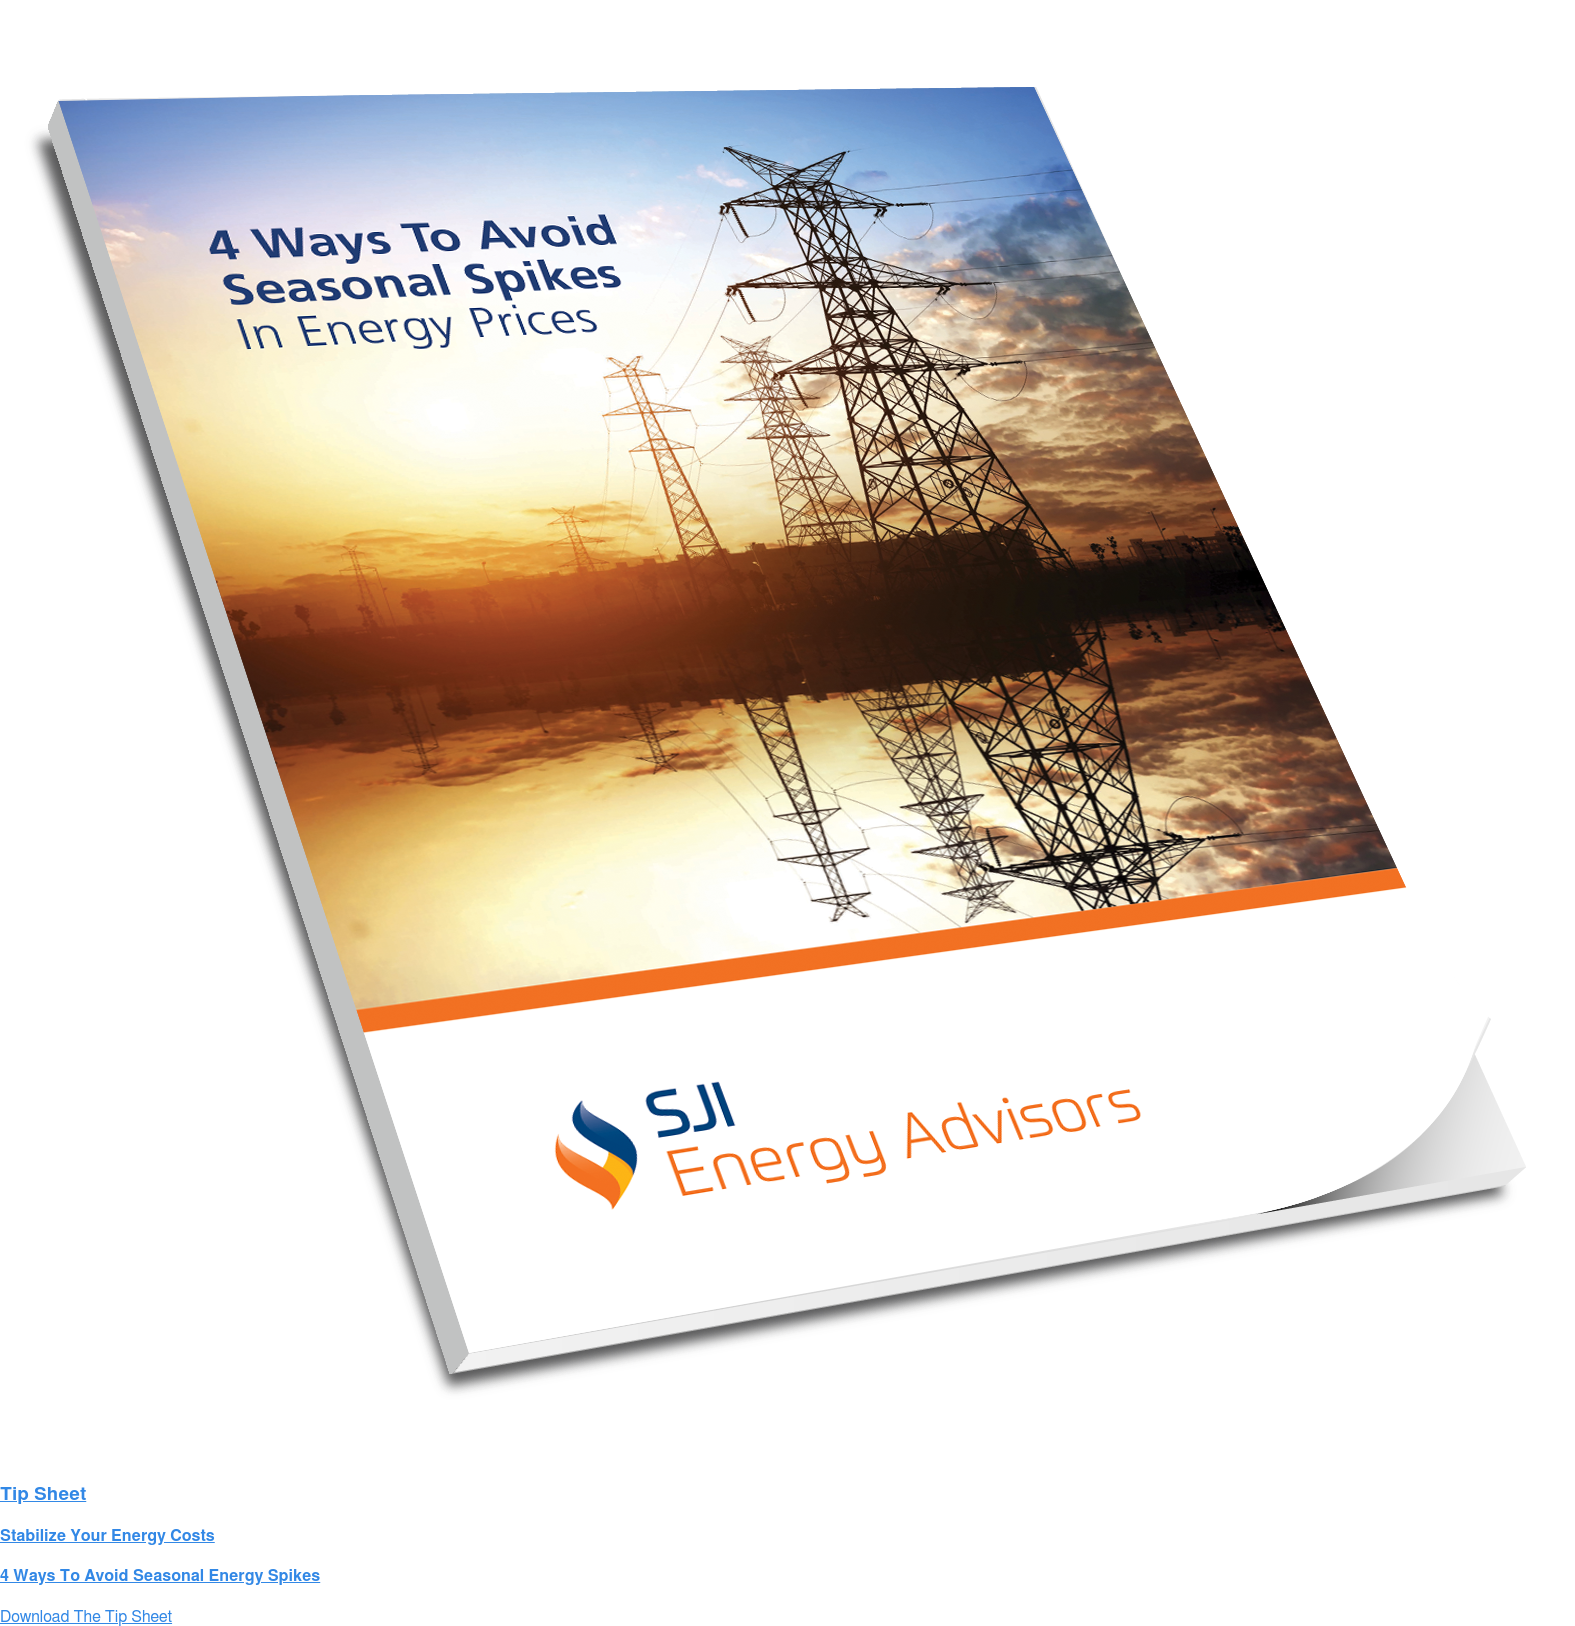 Tip Sheet   Stabilize Your Energy Costs   4 Ways To Avoid Seasonal Energy Spikes Download The Tip Sheet